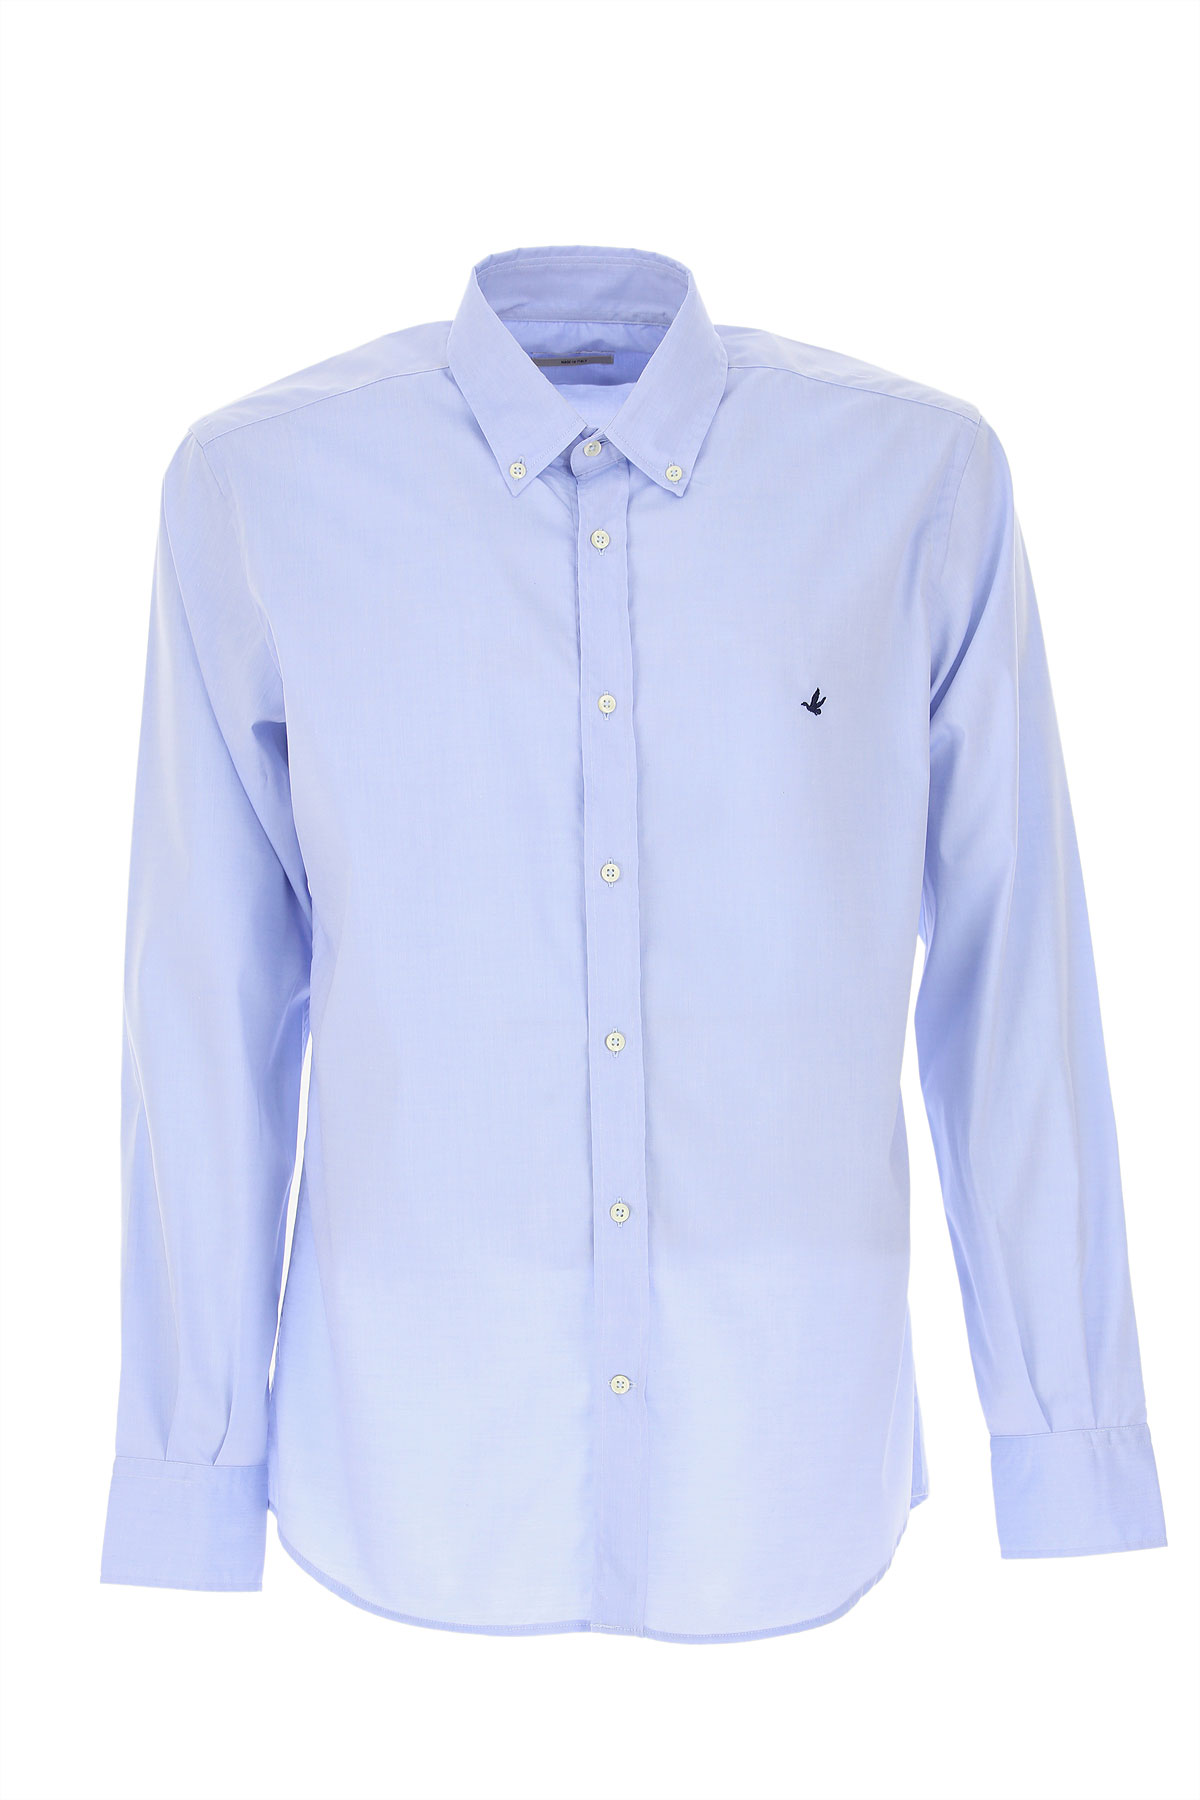 Brooksfield Shirt for Men, Pale Blue, Cotton, 2019, 15.5 16